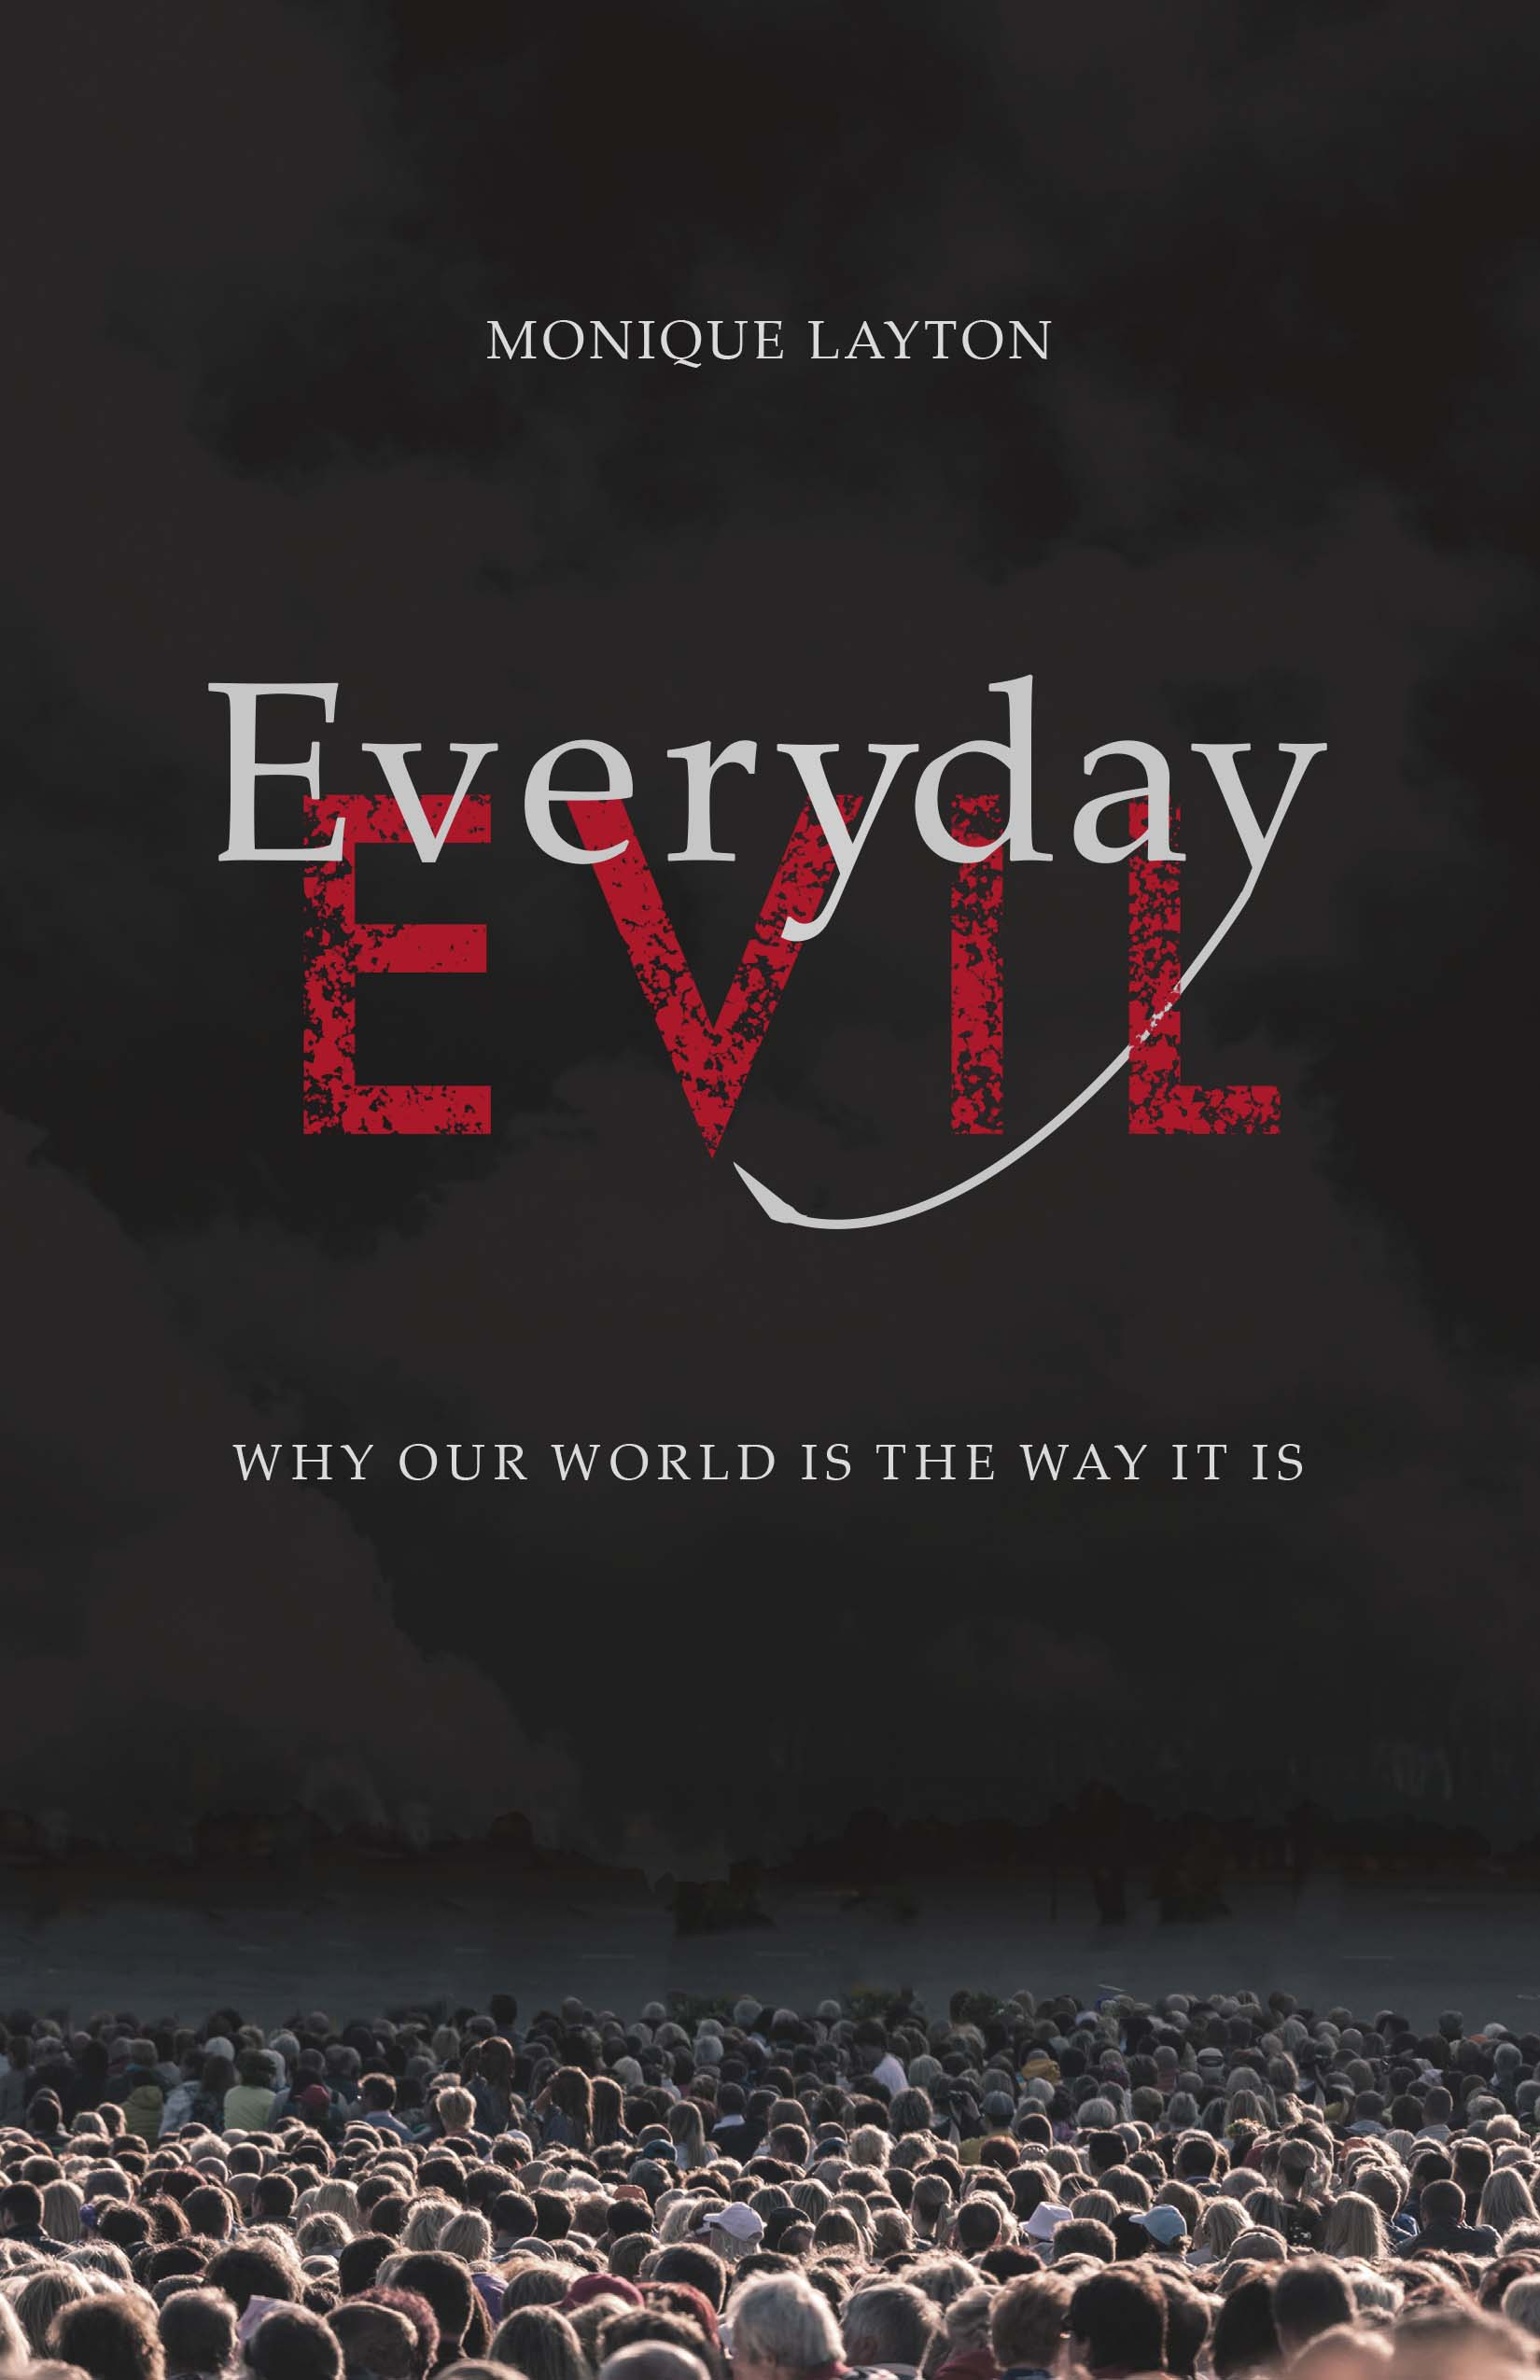 Everyday Evil: Why Our World Is the Way It Is